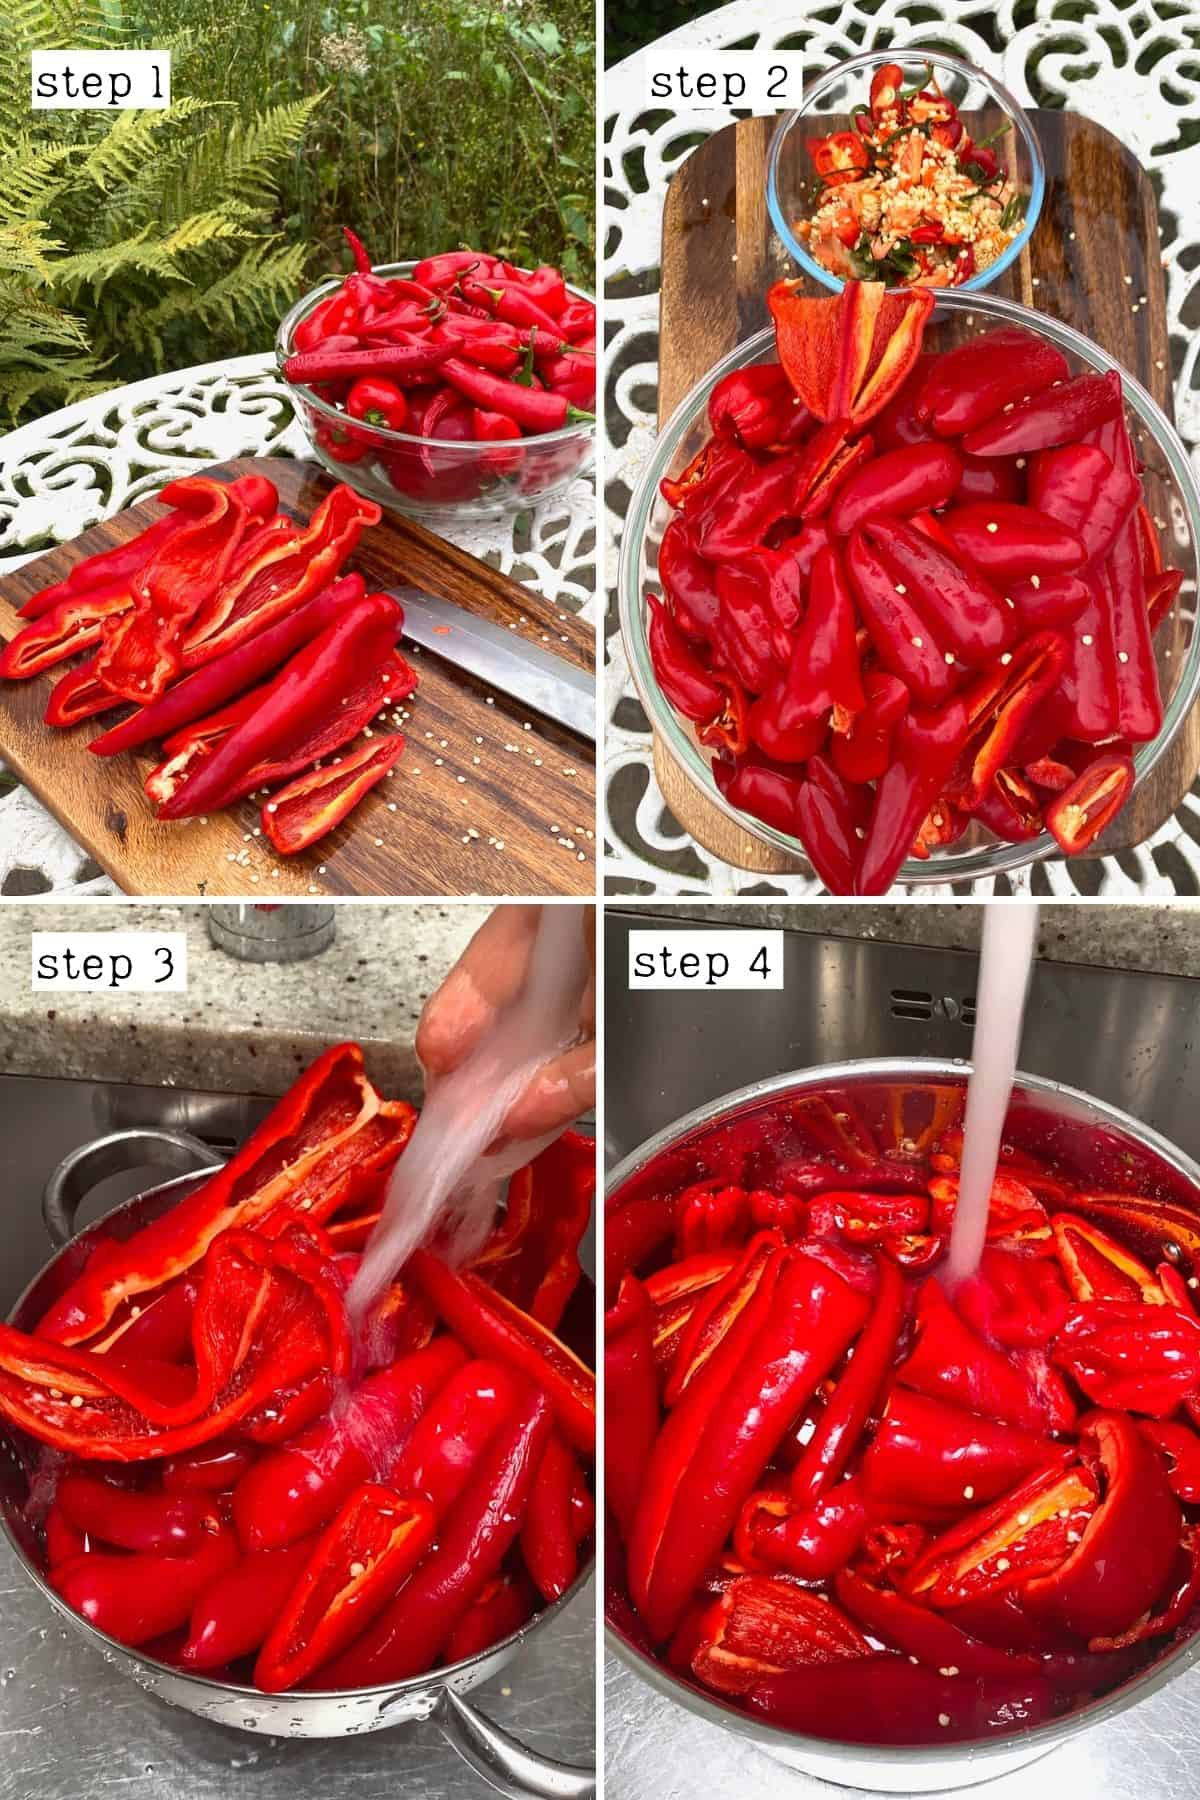 Steps for cleaning peppers